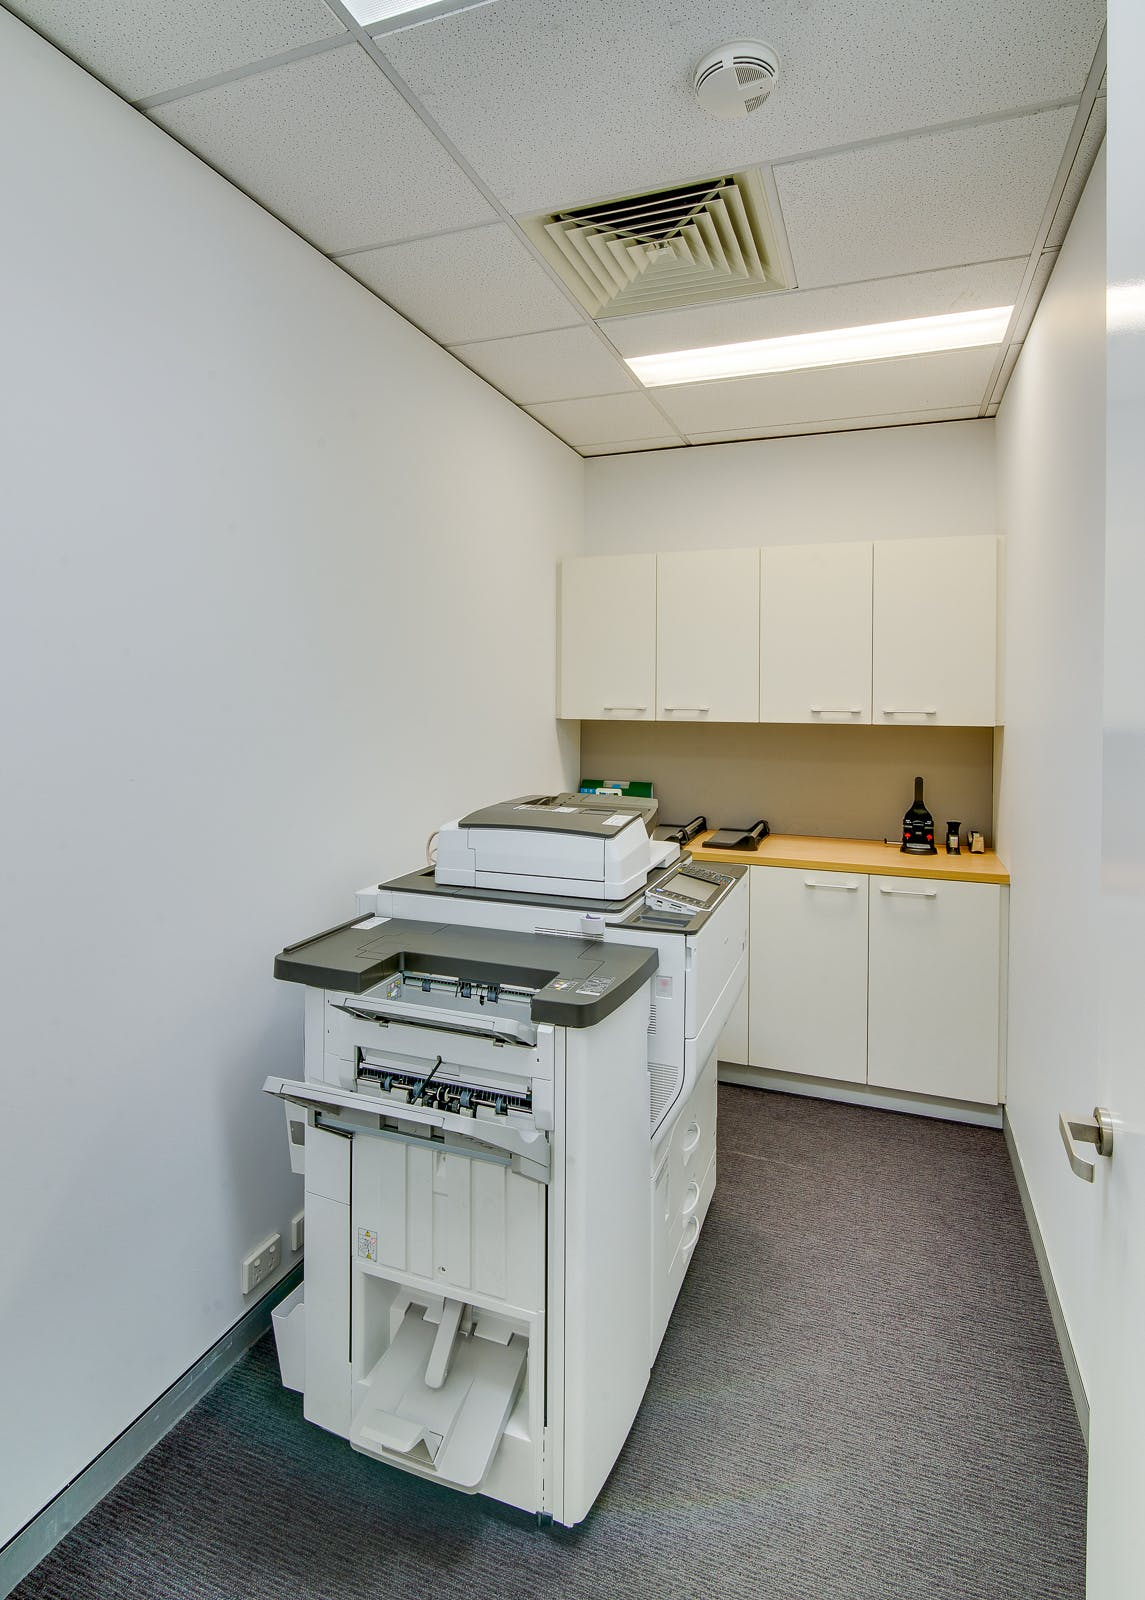 Office 12, serviced office at The Aspire Centre, image 10